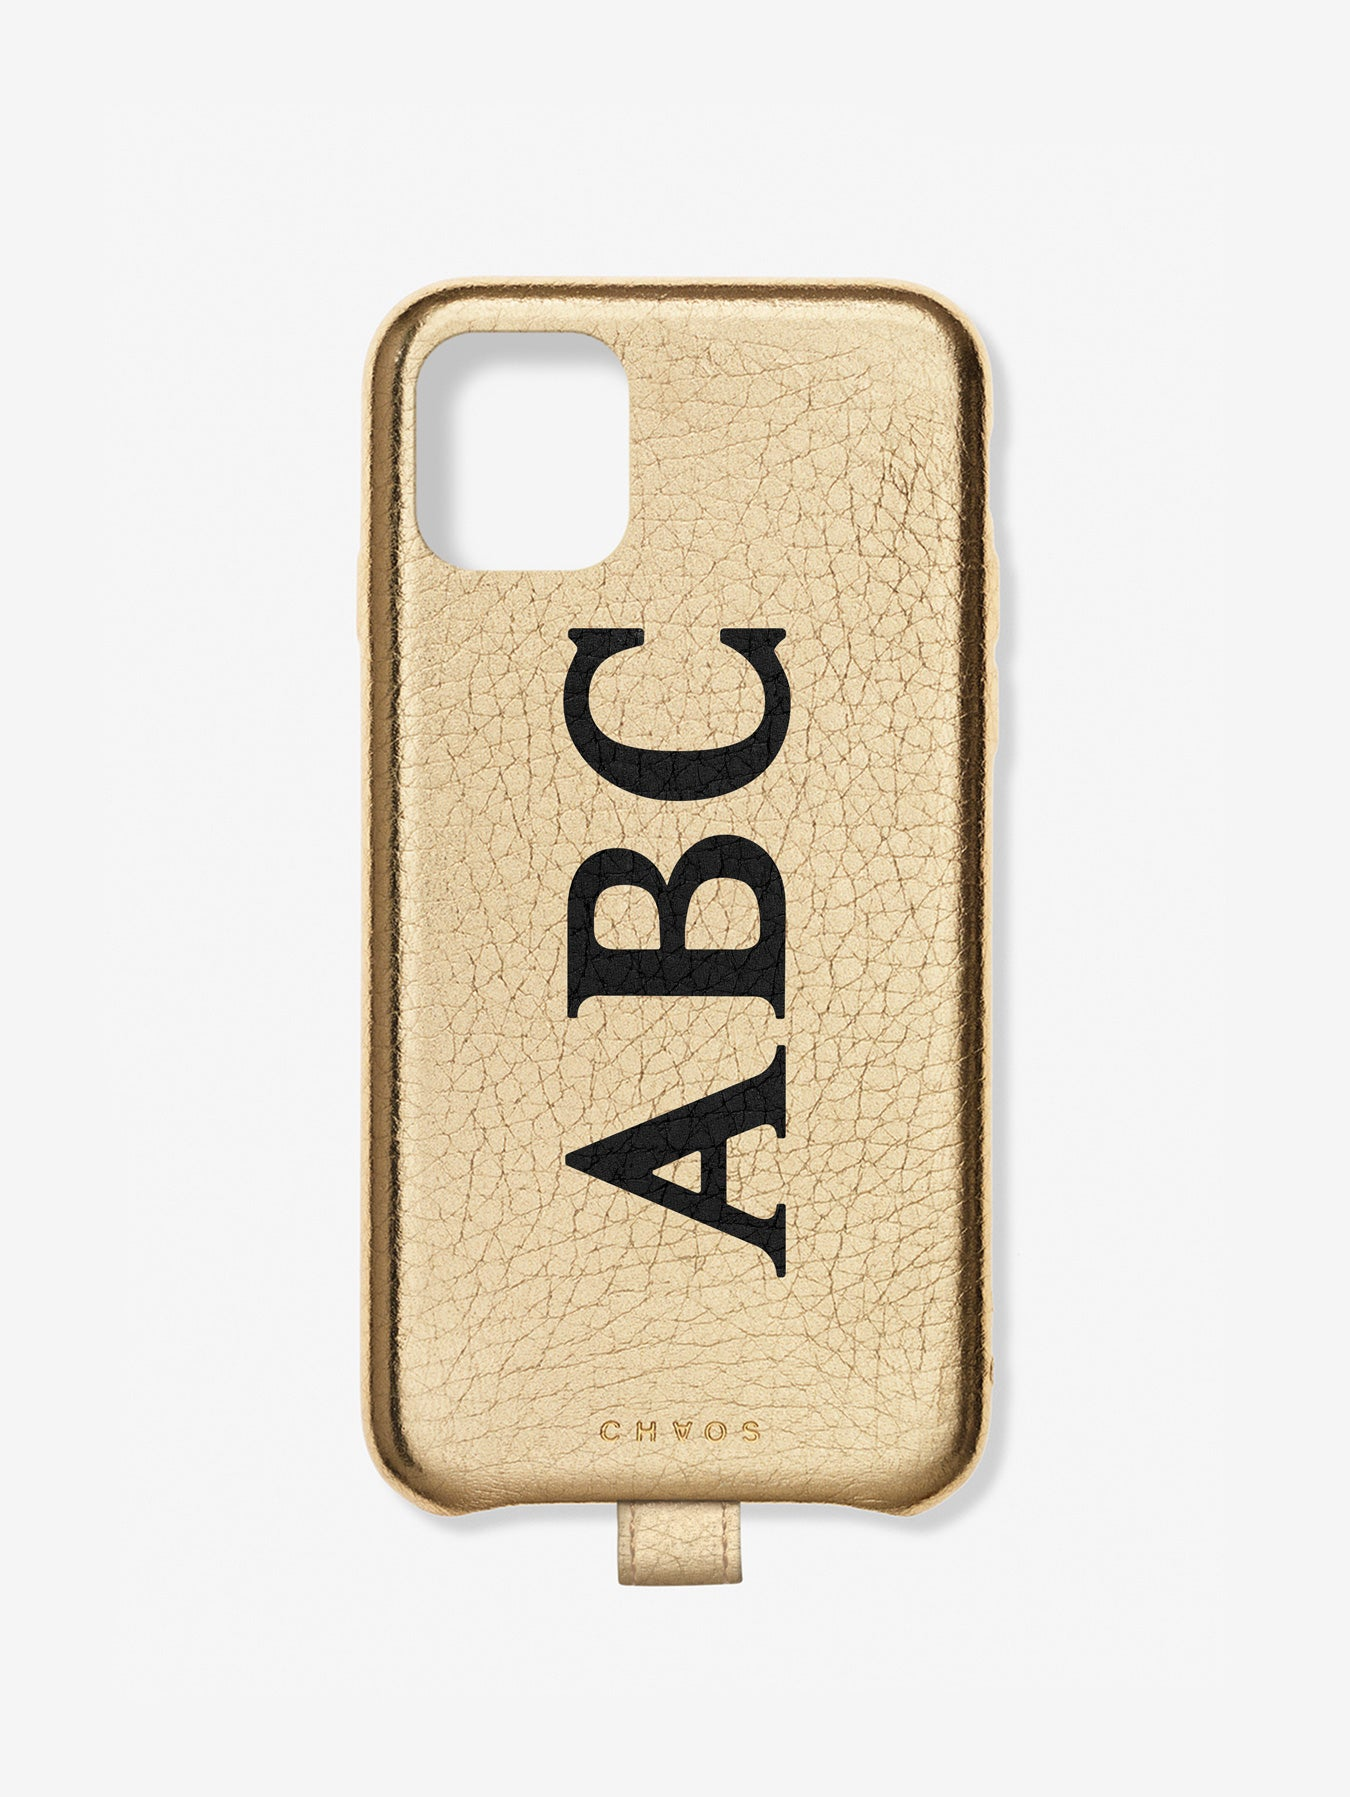 Classic Font Metallic Leather iPhone Case